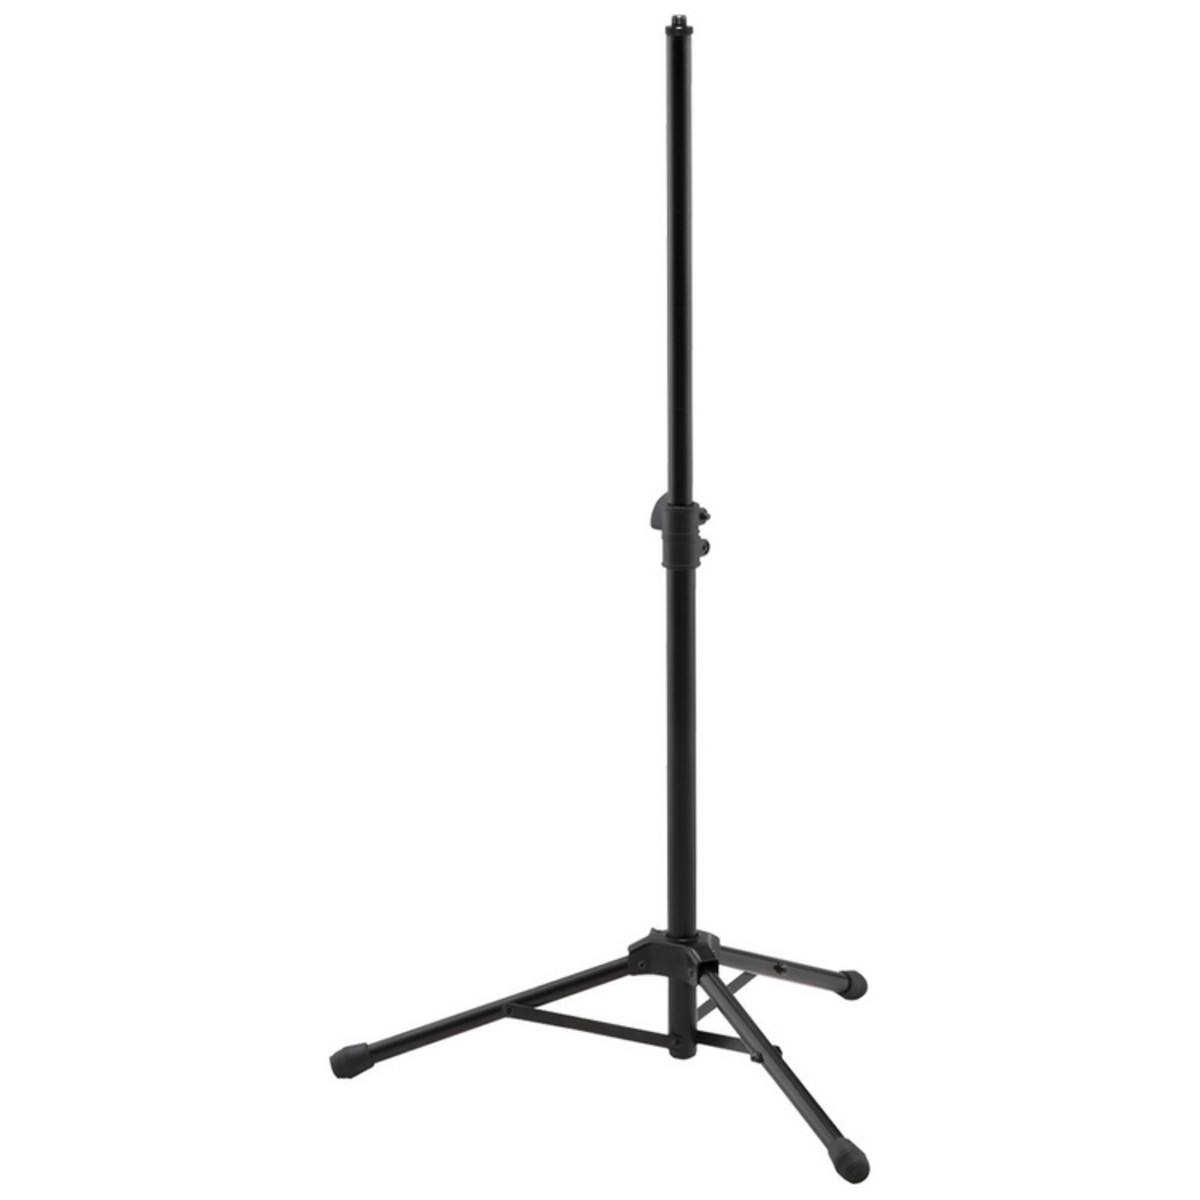 Roland St Cms1 Monitor Speaker Stand For Cm110 Cm220 At